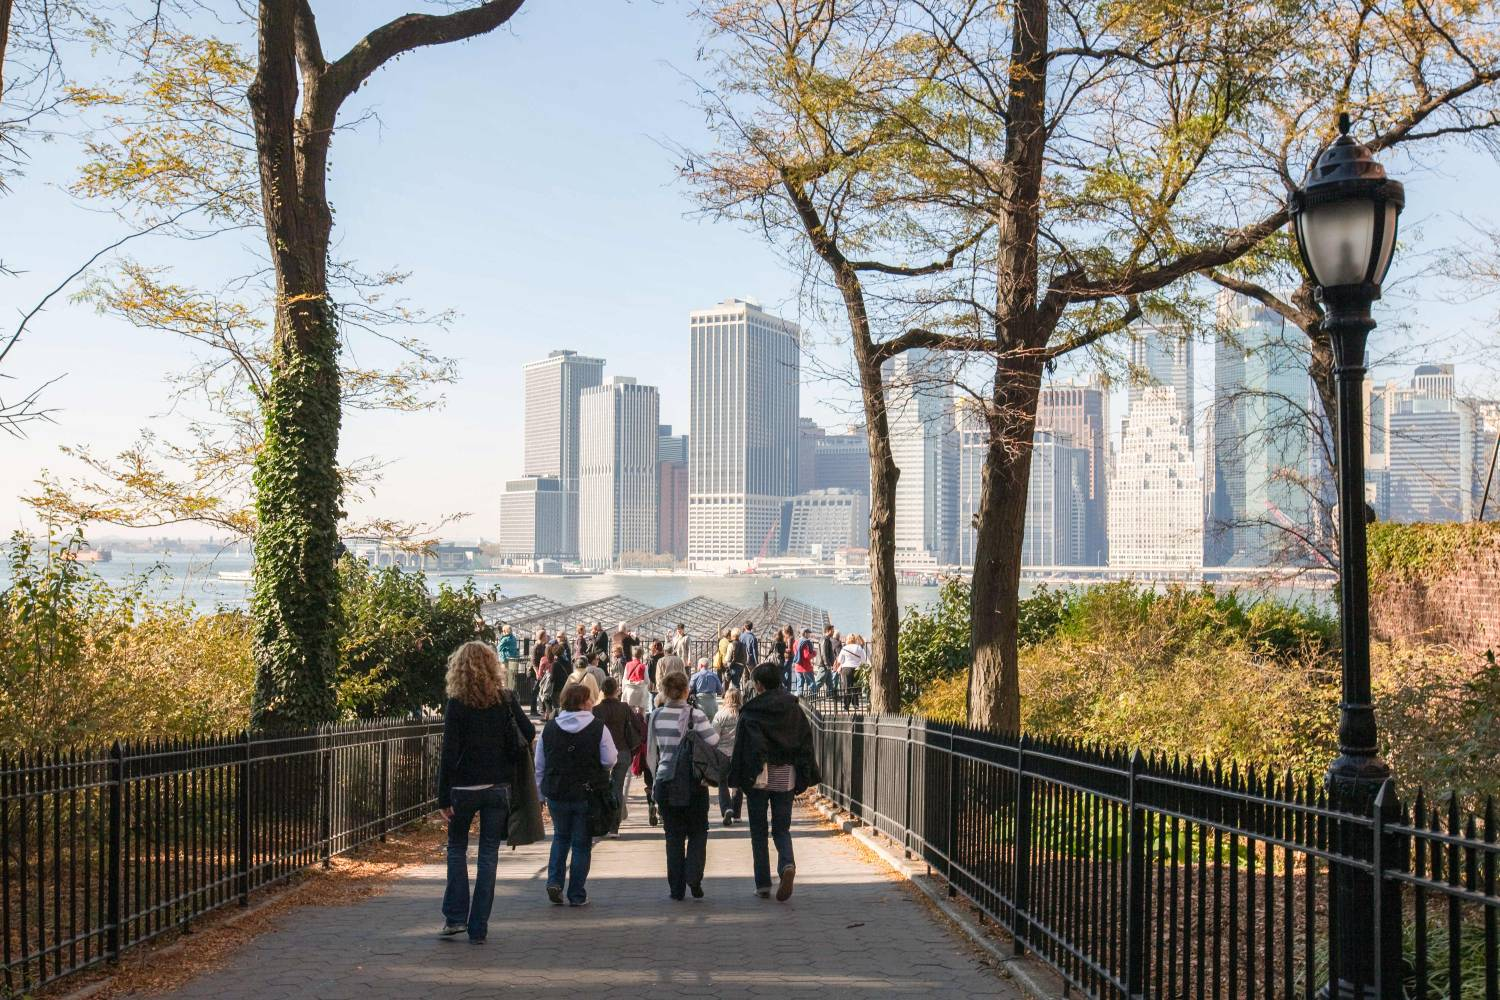 Brooklyn Heights Promenade: Attractions in Brooklyn, NY on